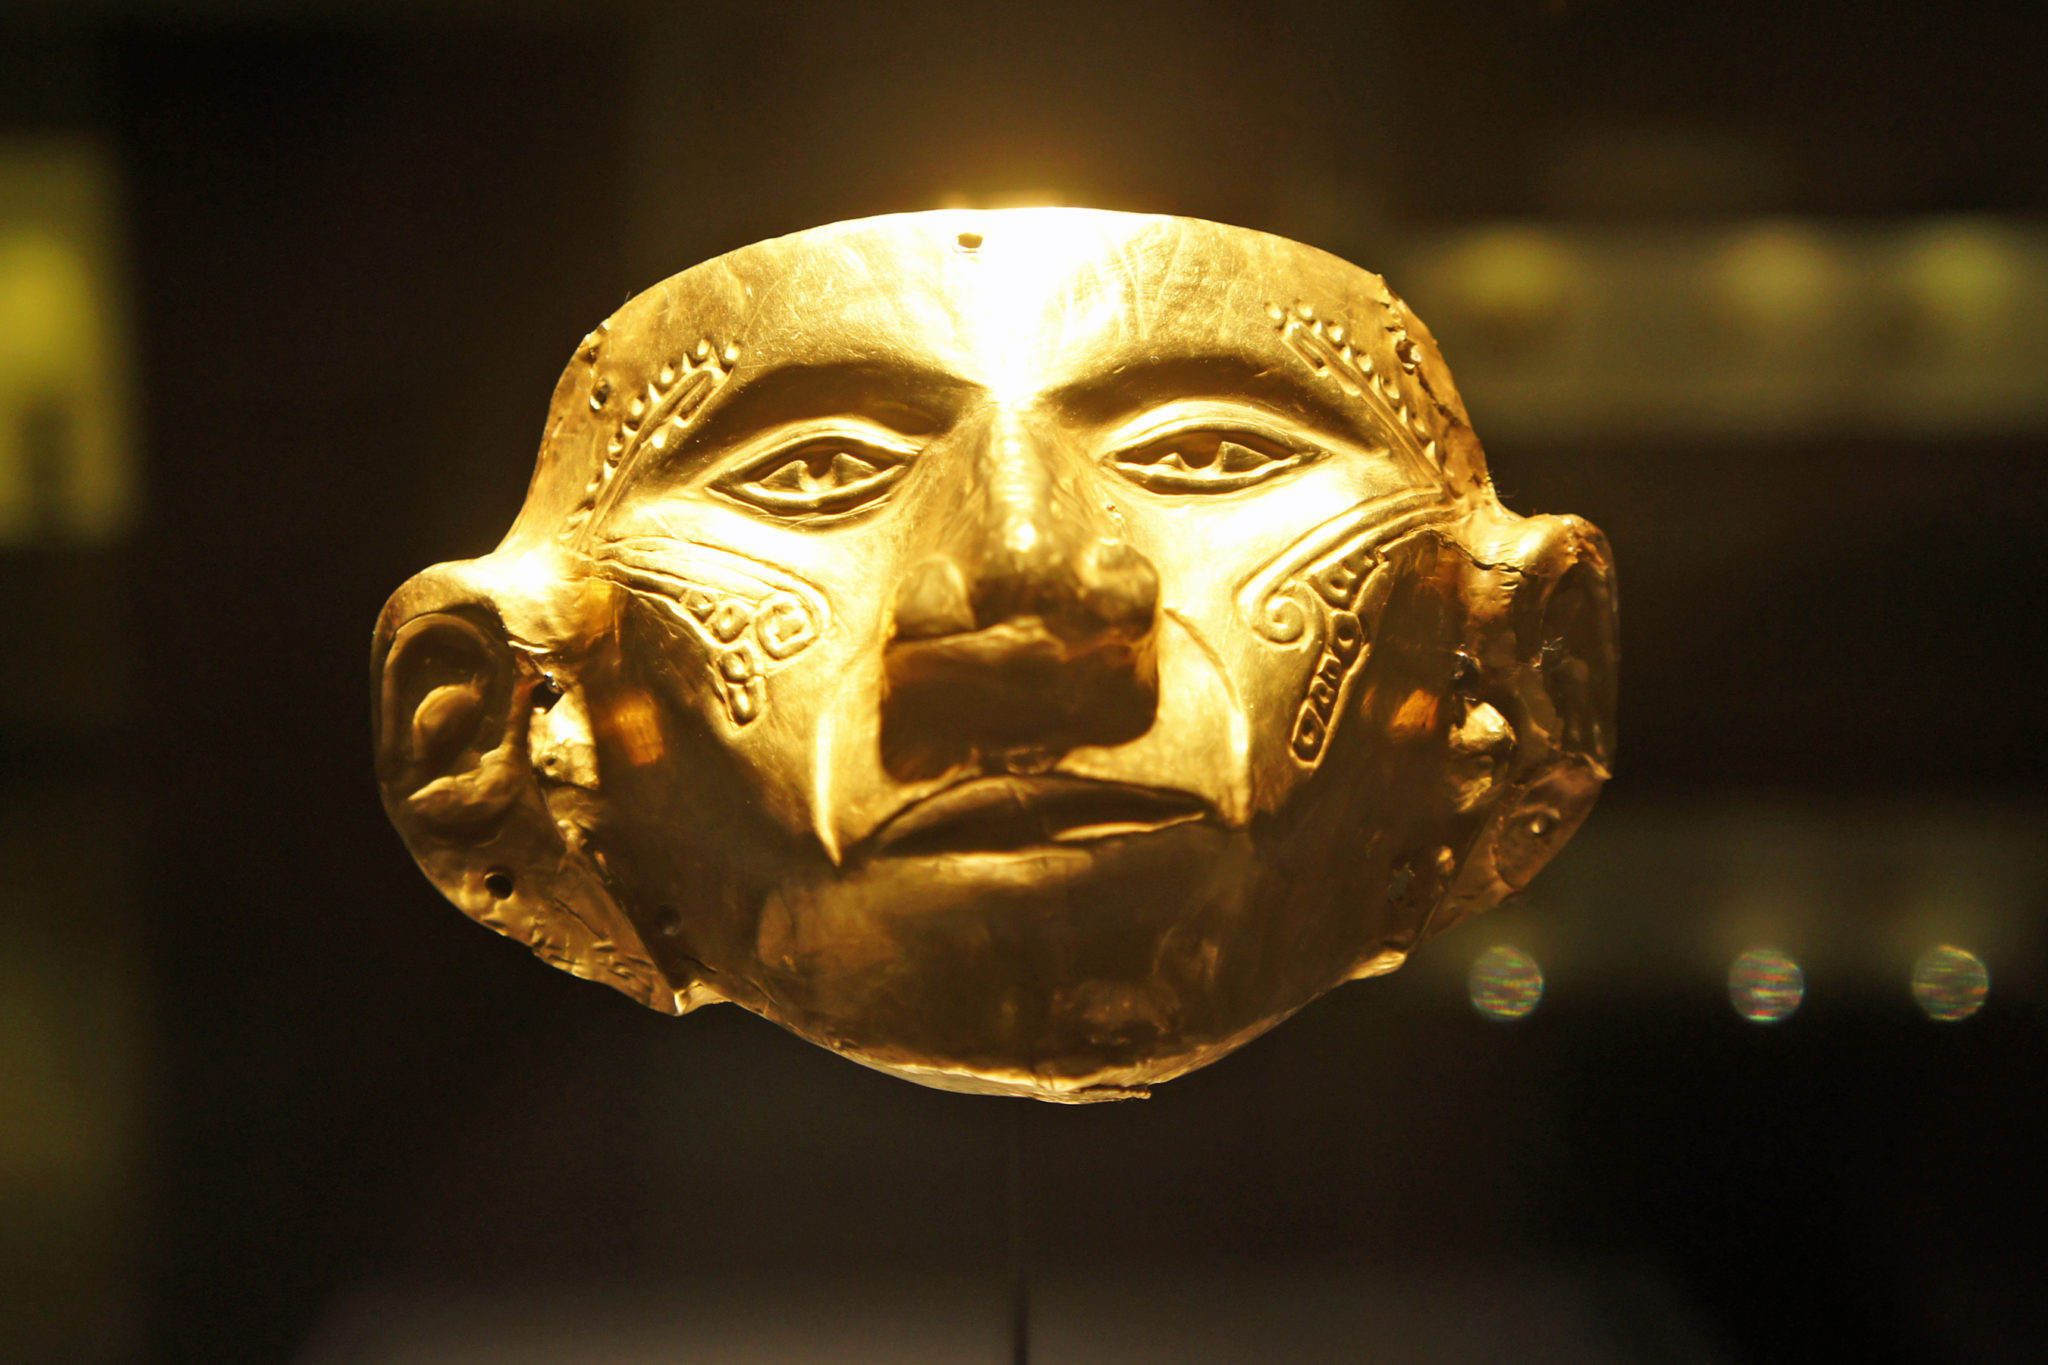 An image from the museo de oro in Bogota